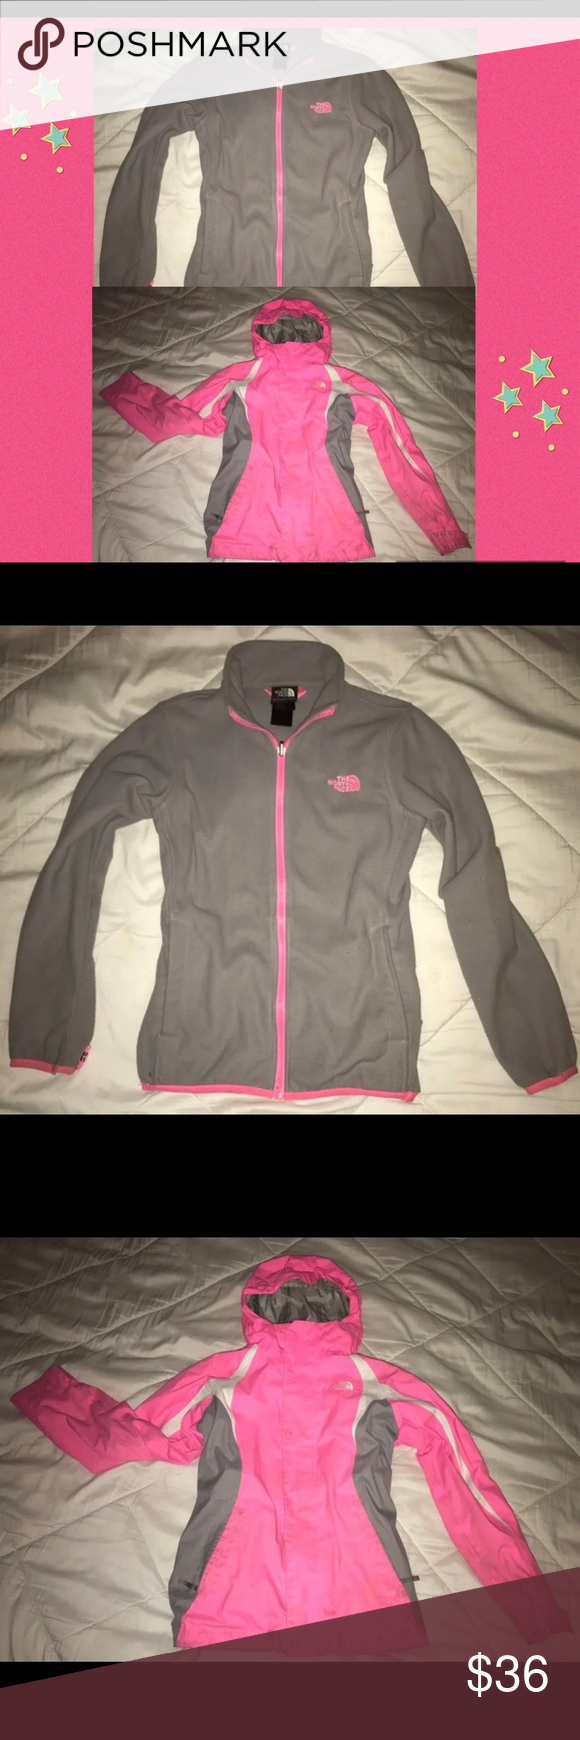 The Northface Hyvent With Detachable Fleece Girls Northface Hyvent Jacket With Deattachable Fleece Has A Hole Clothes Design North Face Jacket The North Face [ 1740 x 580 Pixel ]